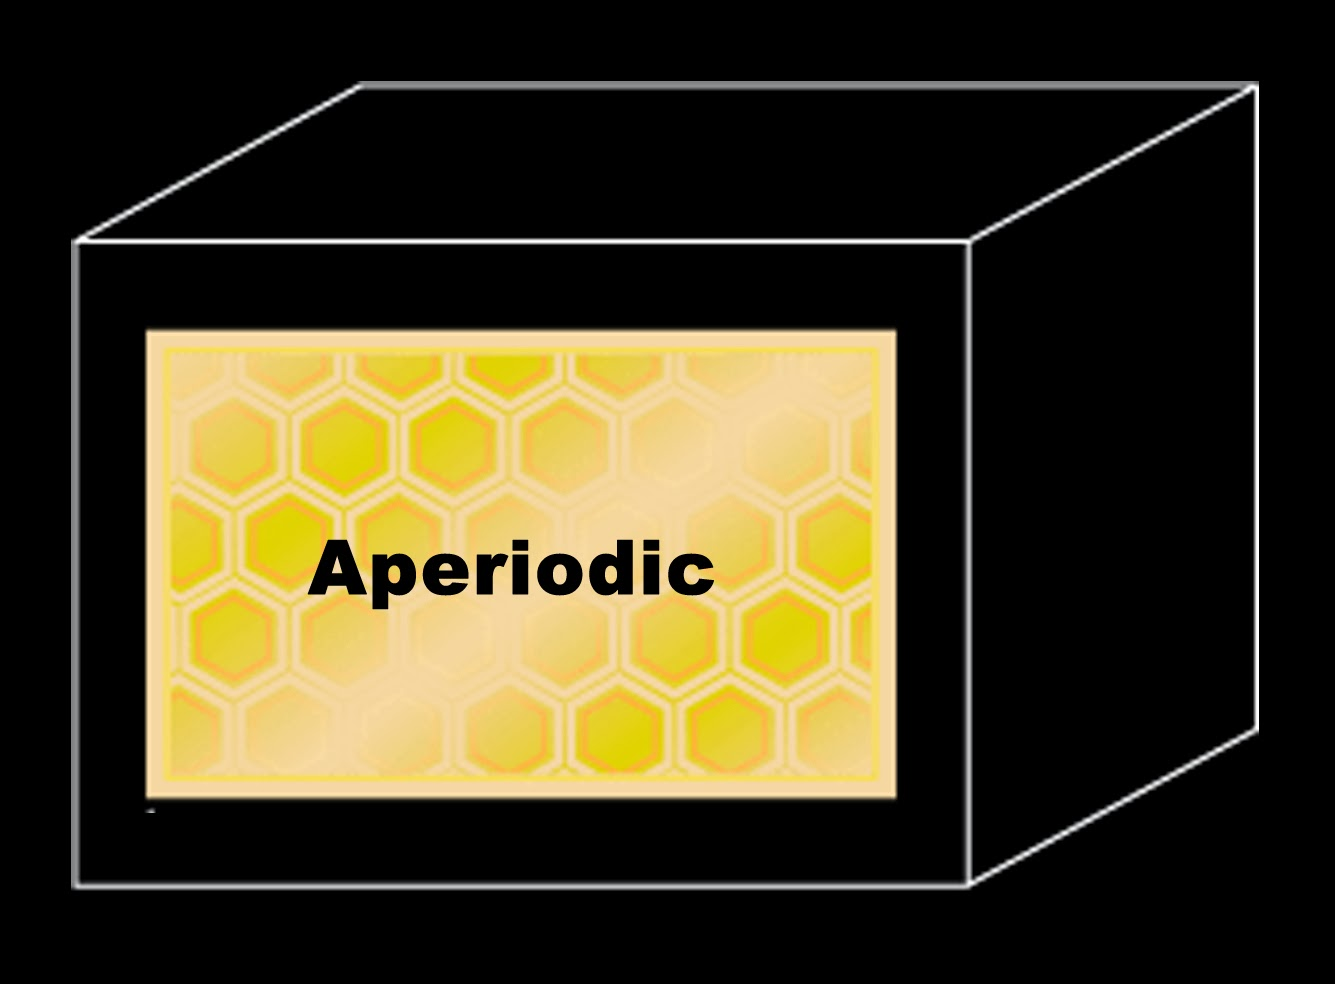 illustration of the rear of an aperiodically dampened enclosure